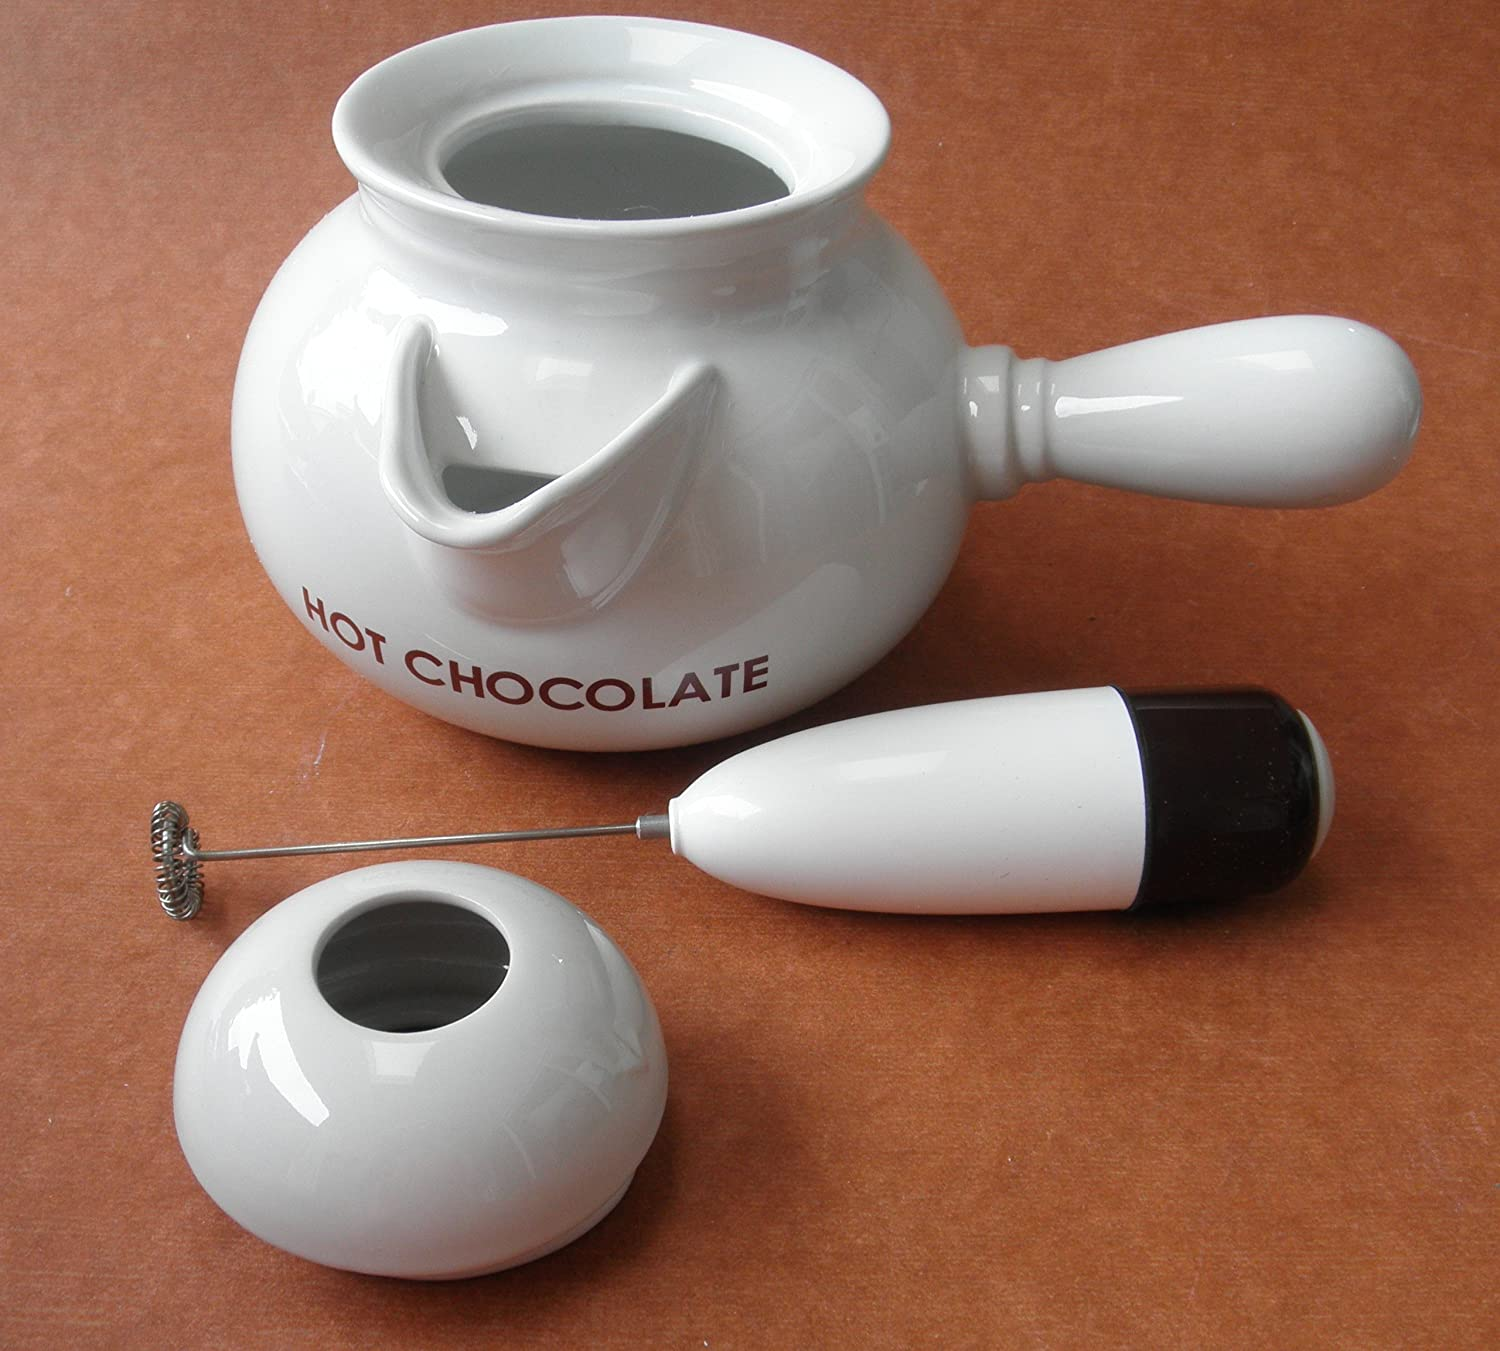 Amazon.com: 4-cup Ceramic Hot Chocolate Maker - Includes Lid and ...